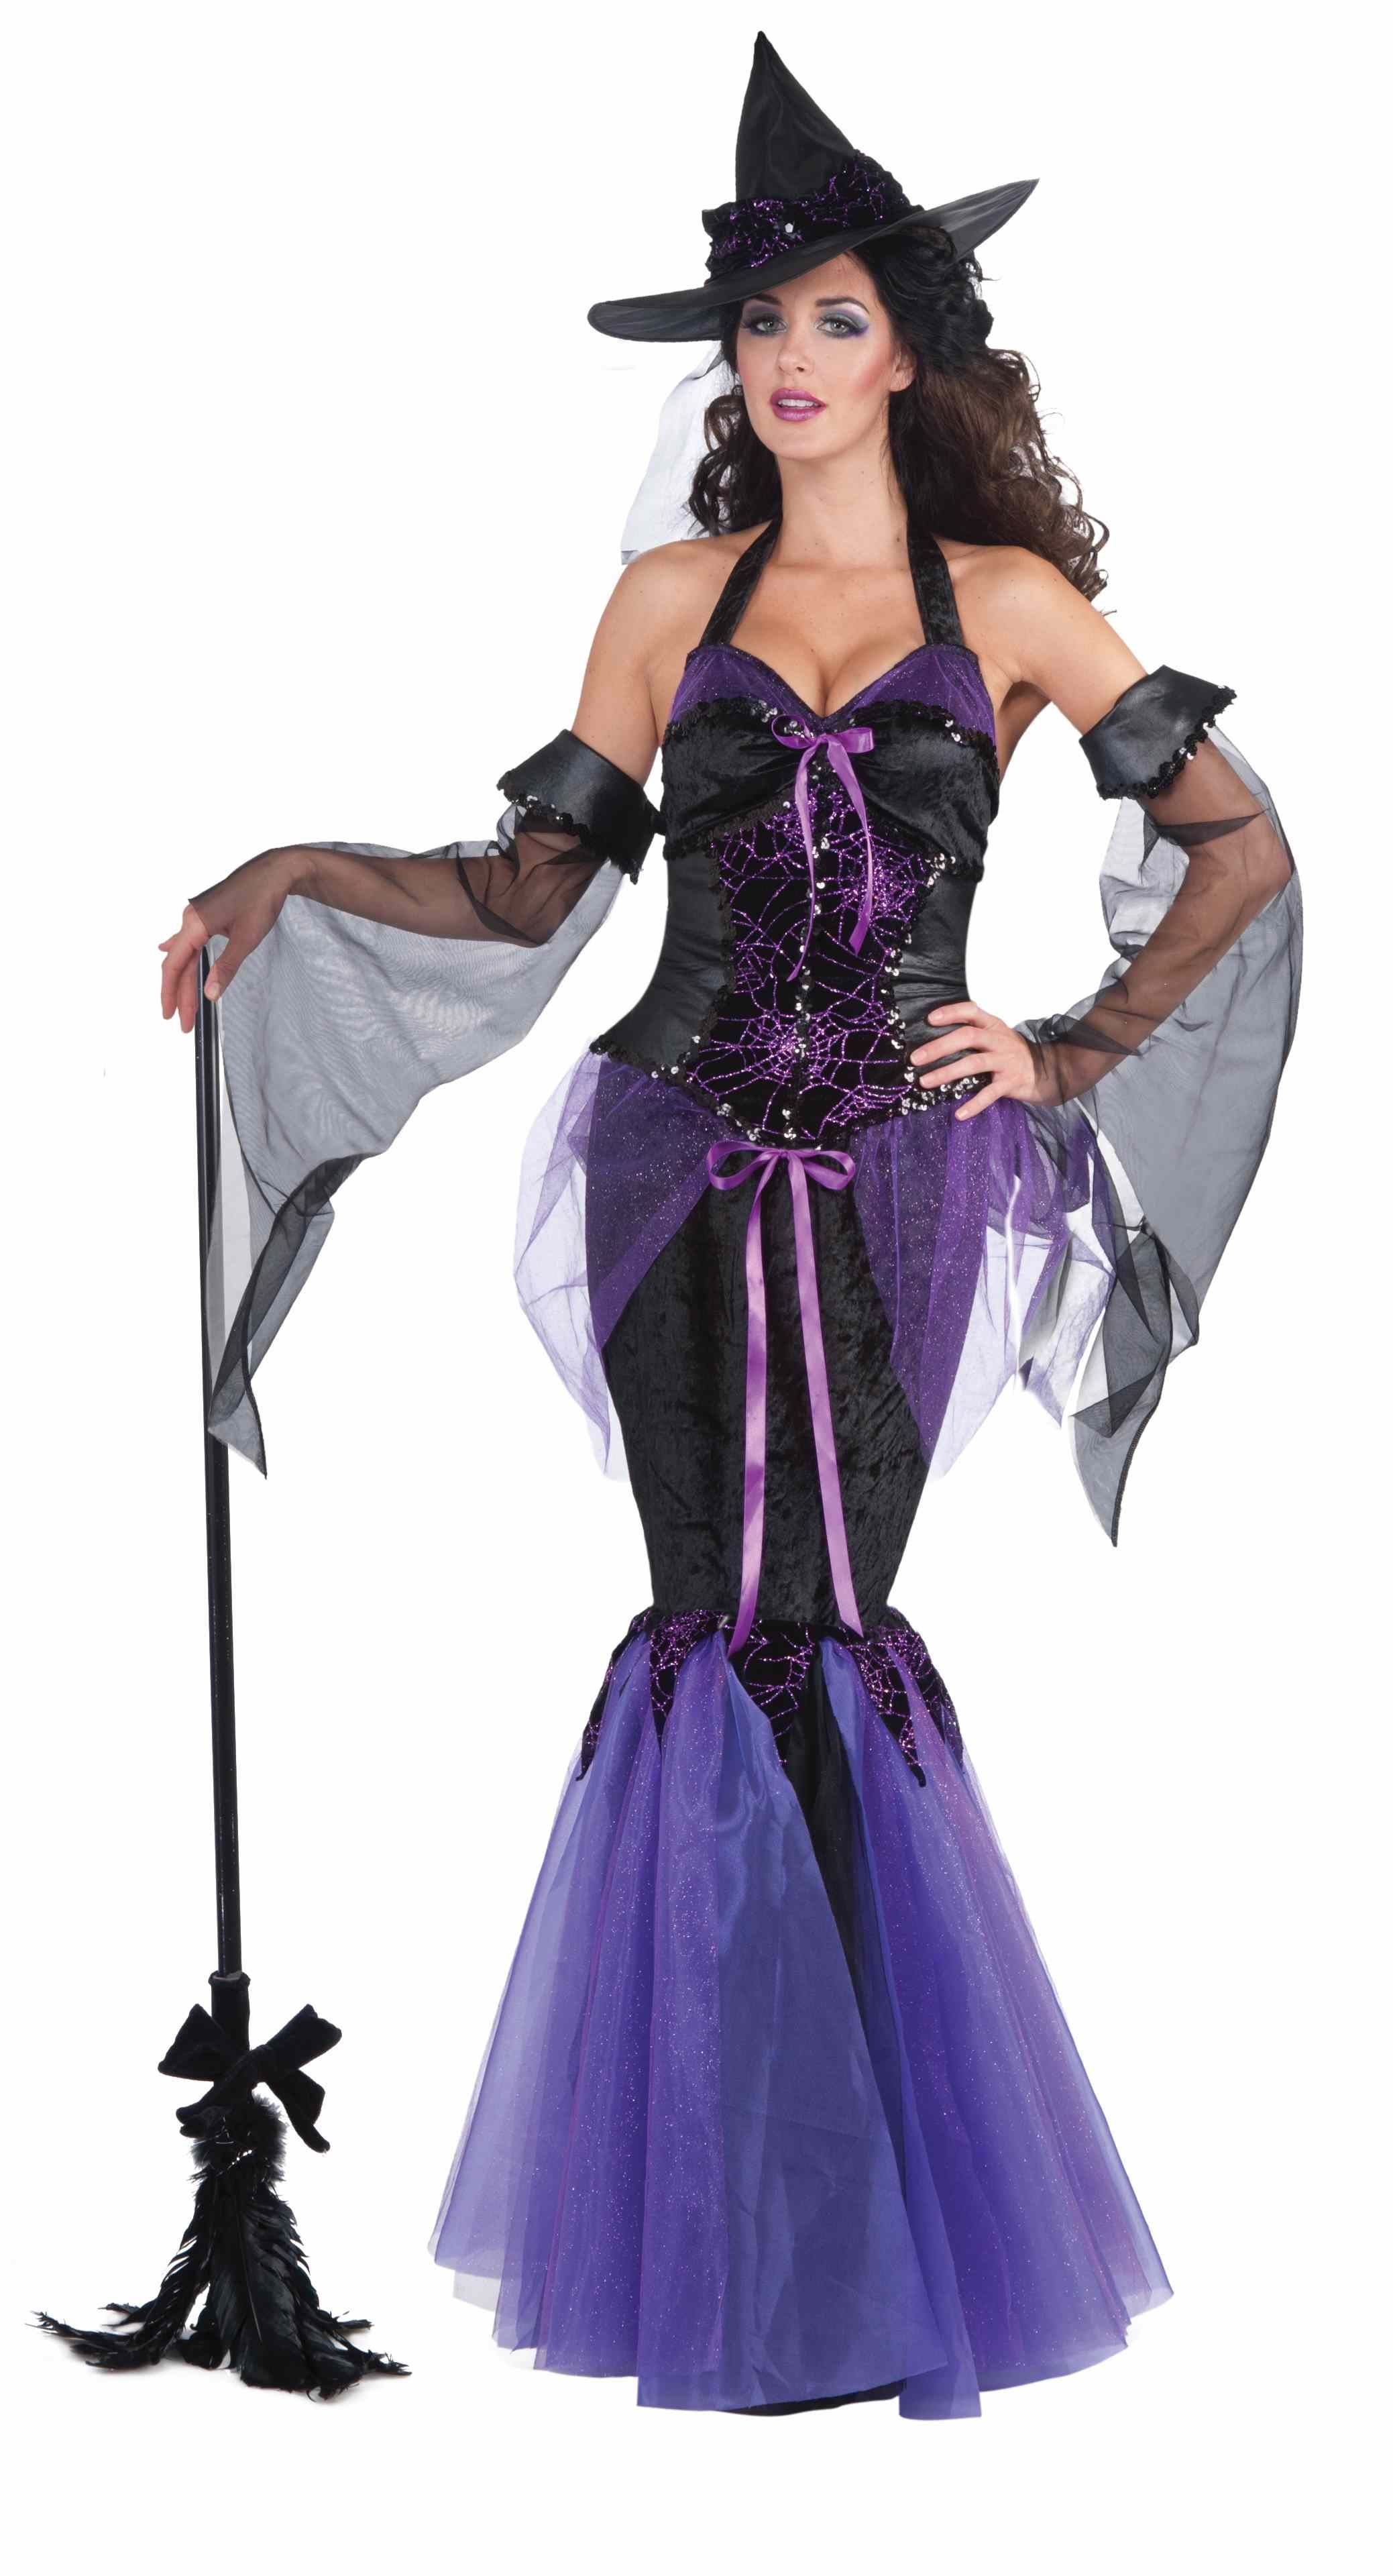 Halloween Costumes Ideas Decorations Wallpaper Pictures Costumes ...